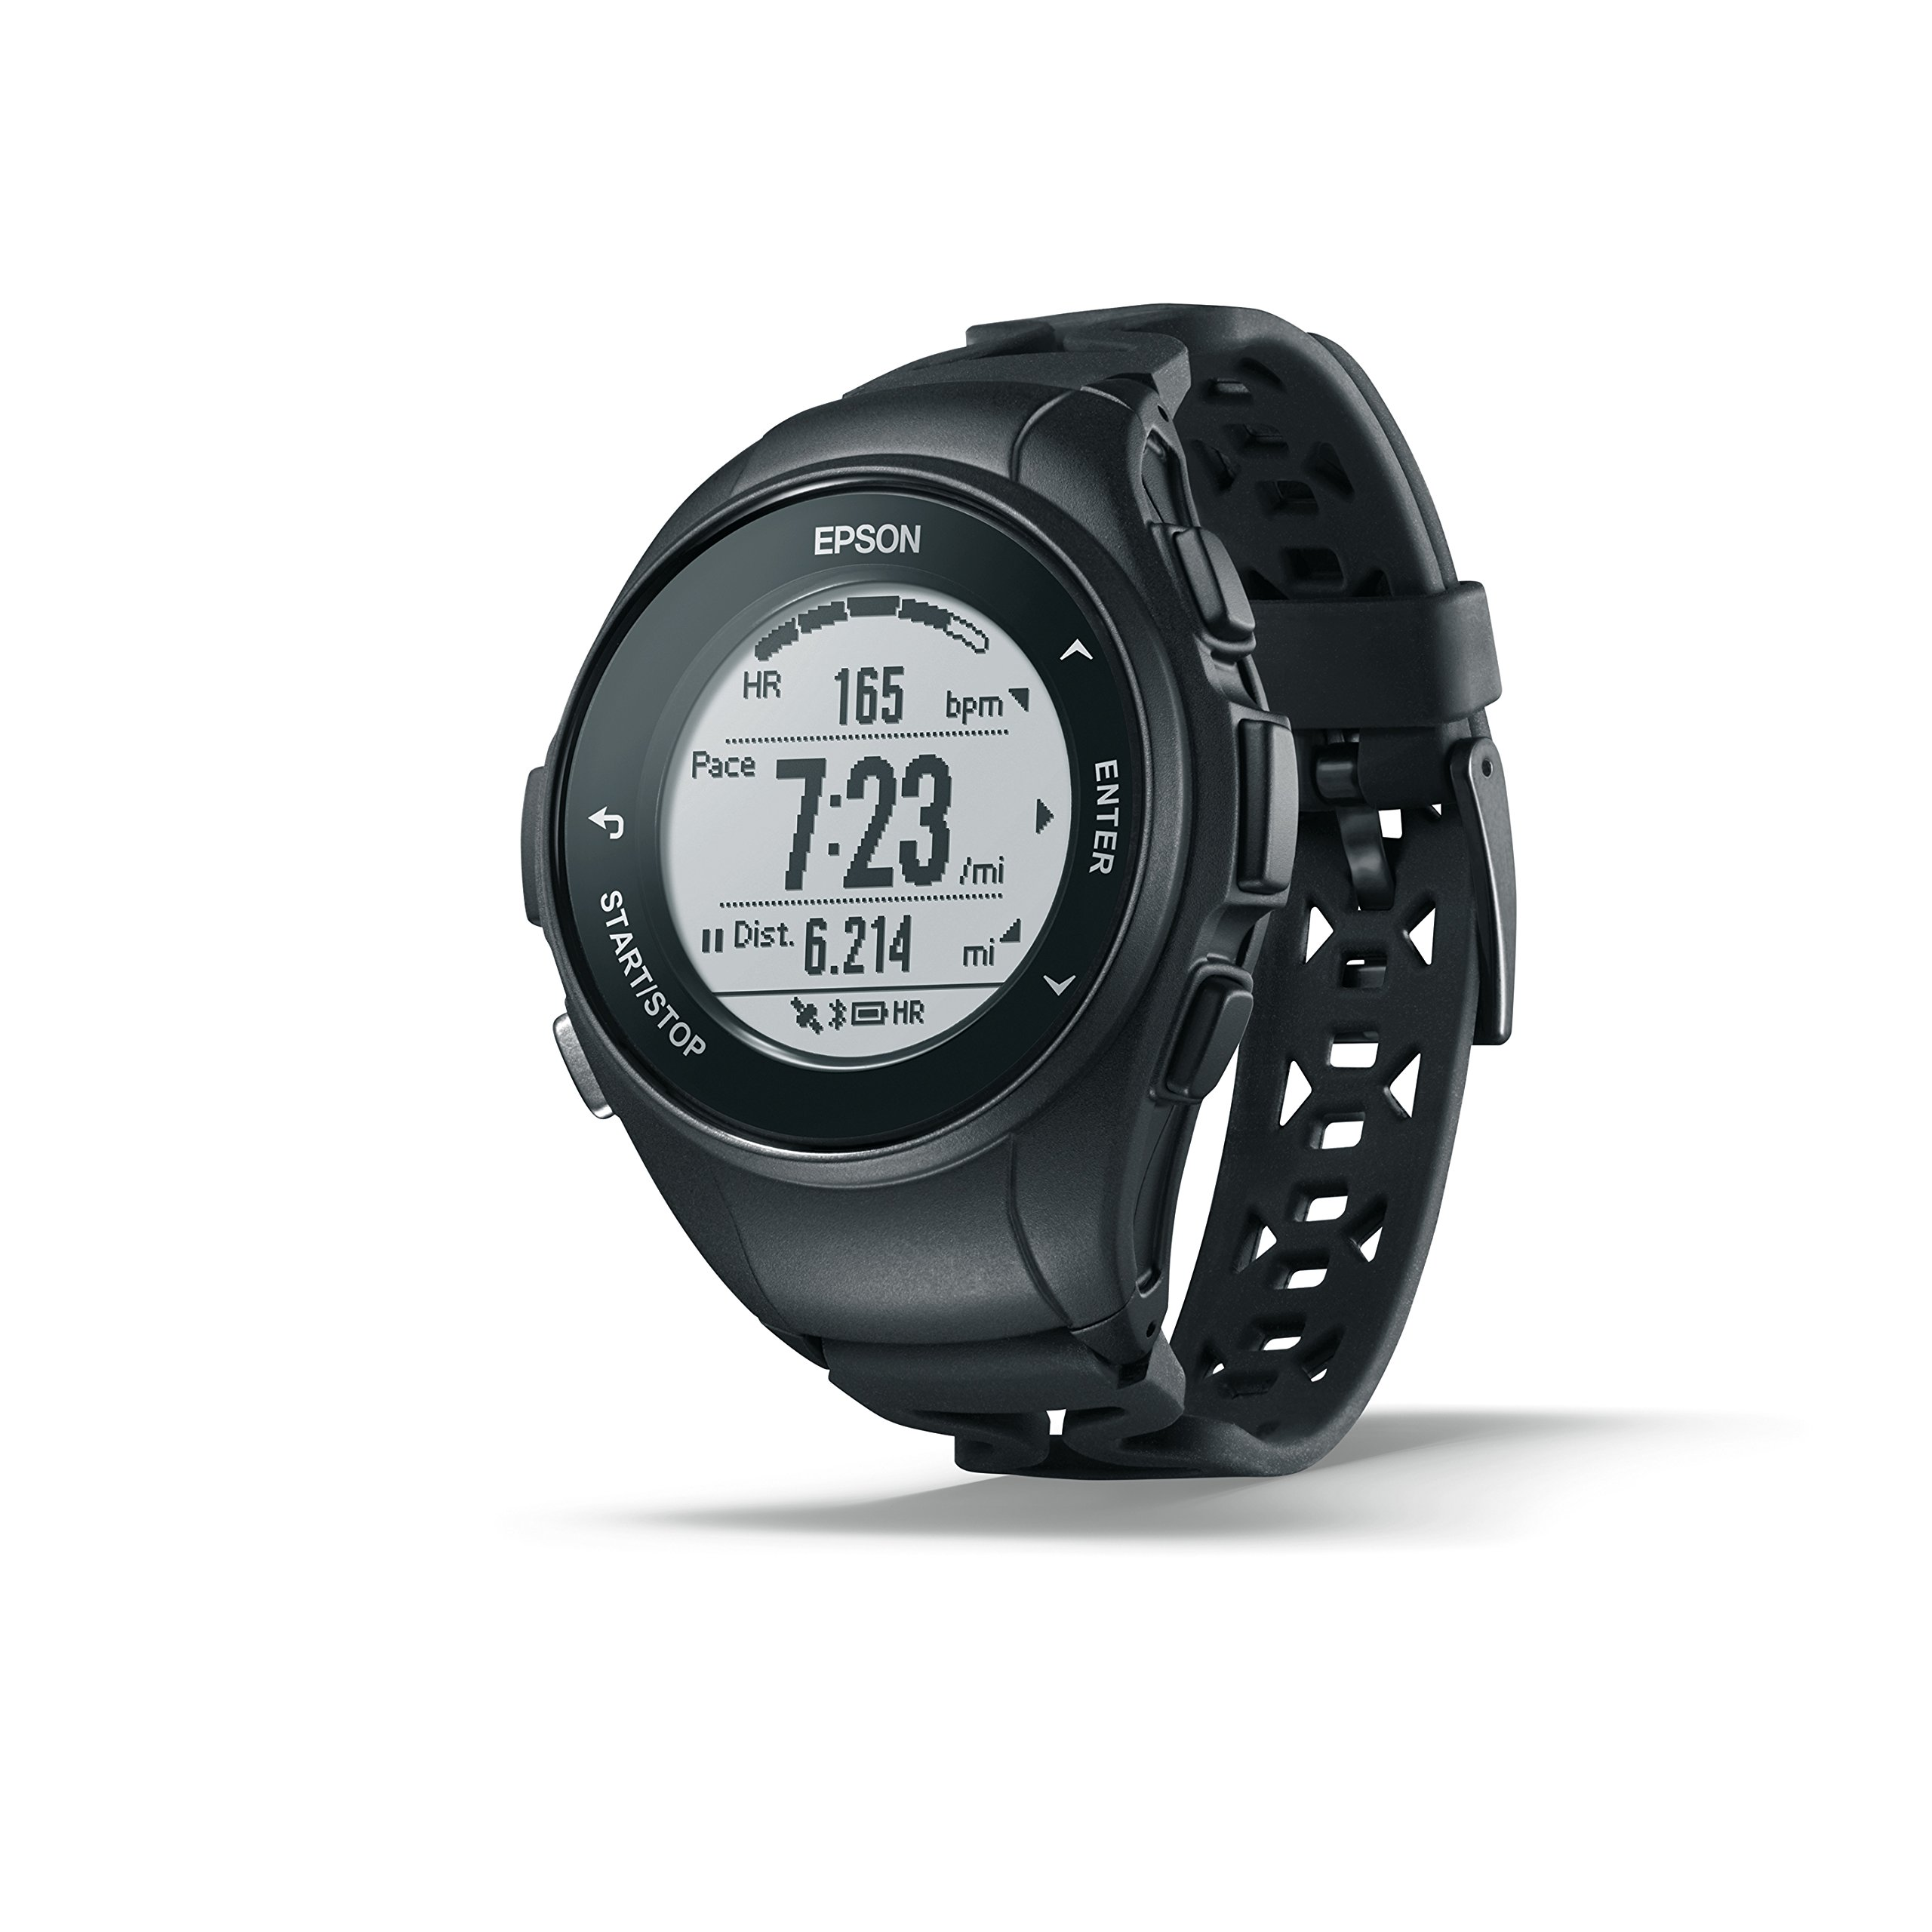 Epson E11E222012 ProSense 57 GPS Running Watch with Heart Rate from the Wrist - Black